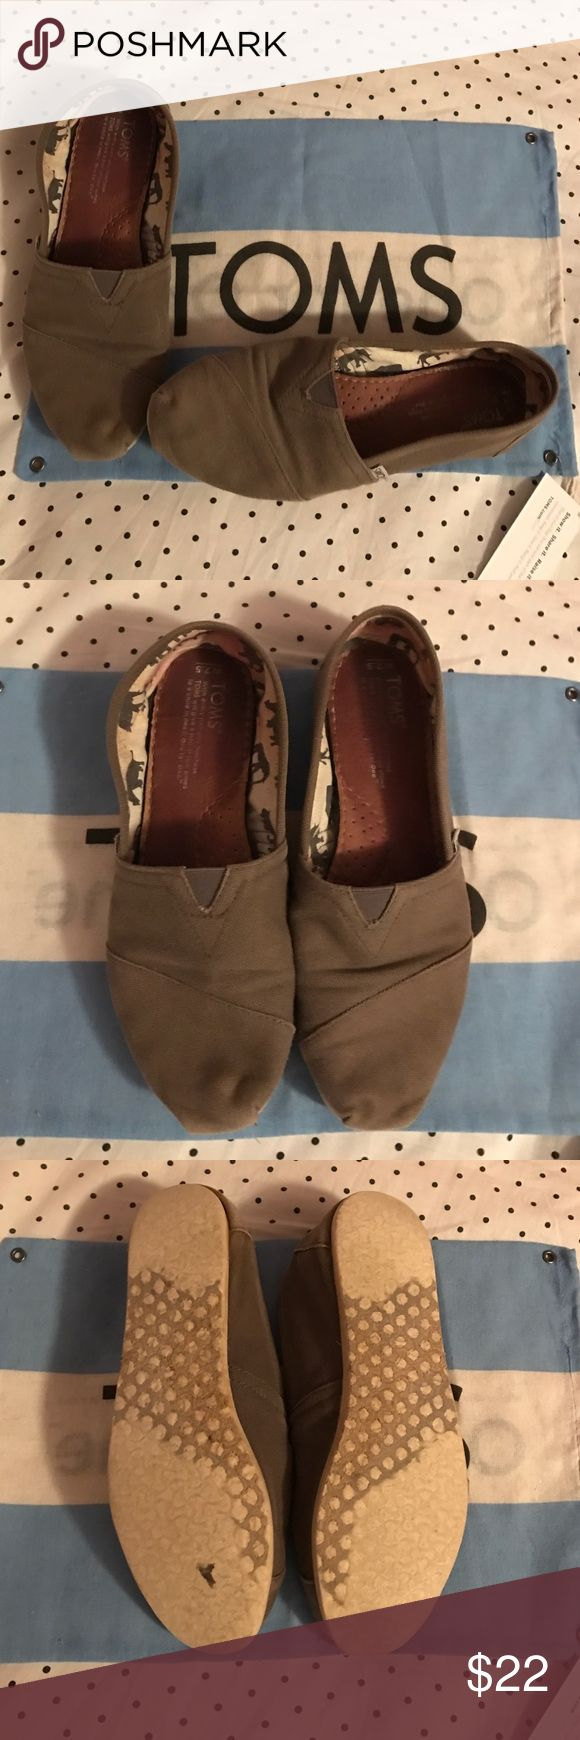 Gray Toms Previously worn, but still in good condition. I always wore socks with them, so there is some light pink staining on the inner heels of shoe from socks. No tears, apart from a small beginning tear on the heel. TOMS Shoes Flats & Loafers